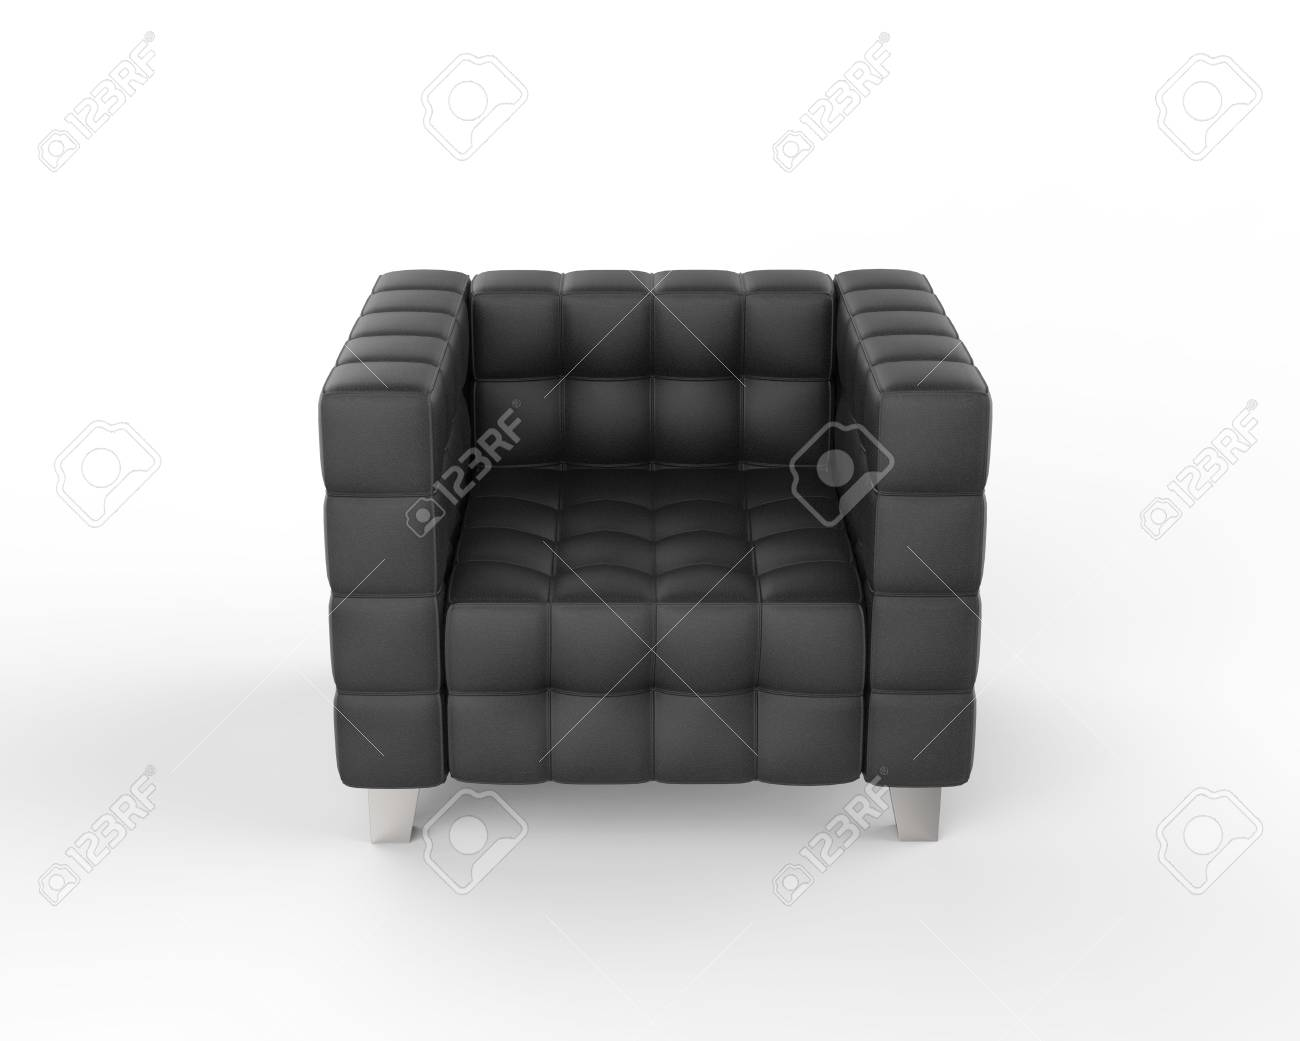 photo black leather armchair on white background front view